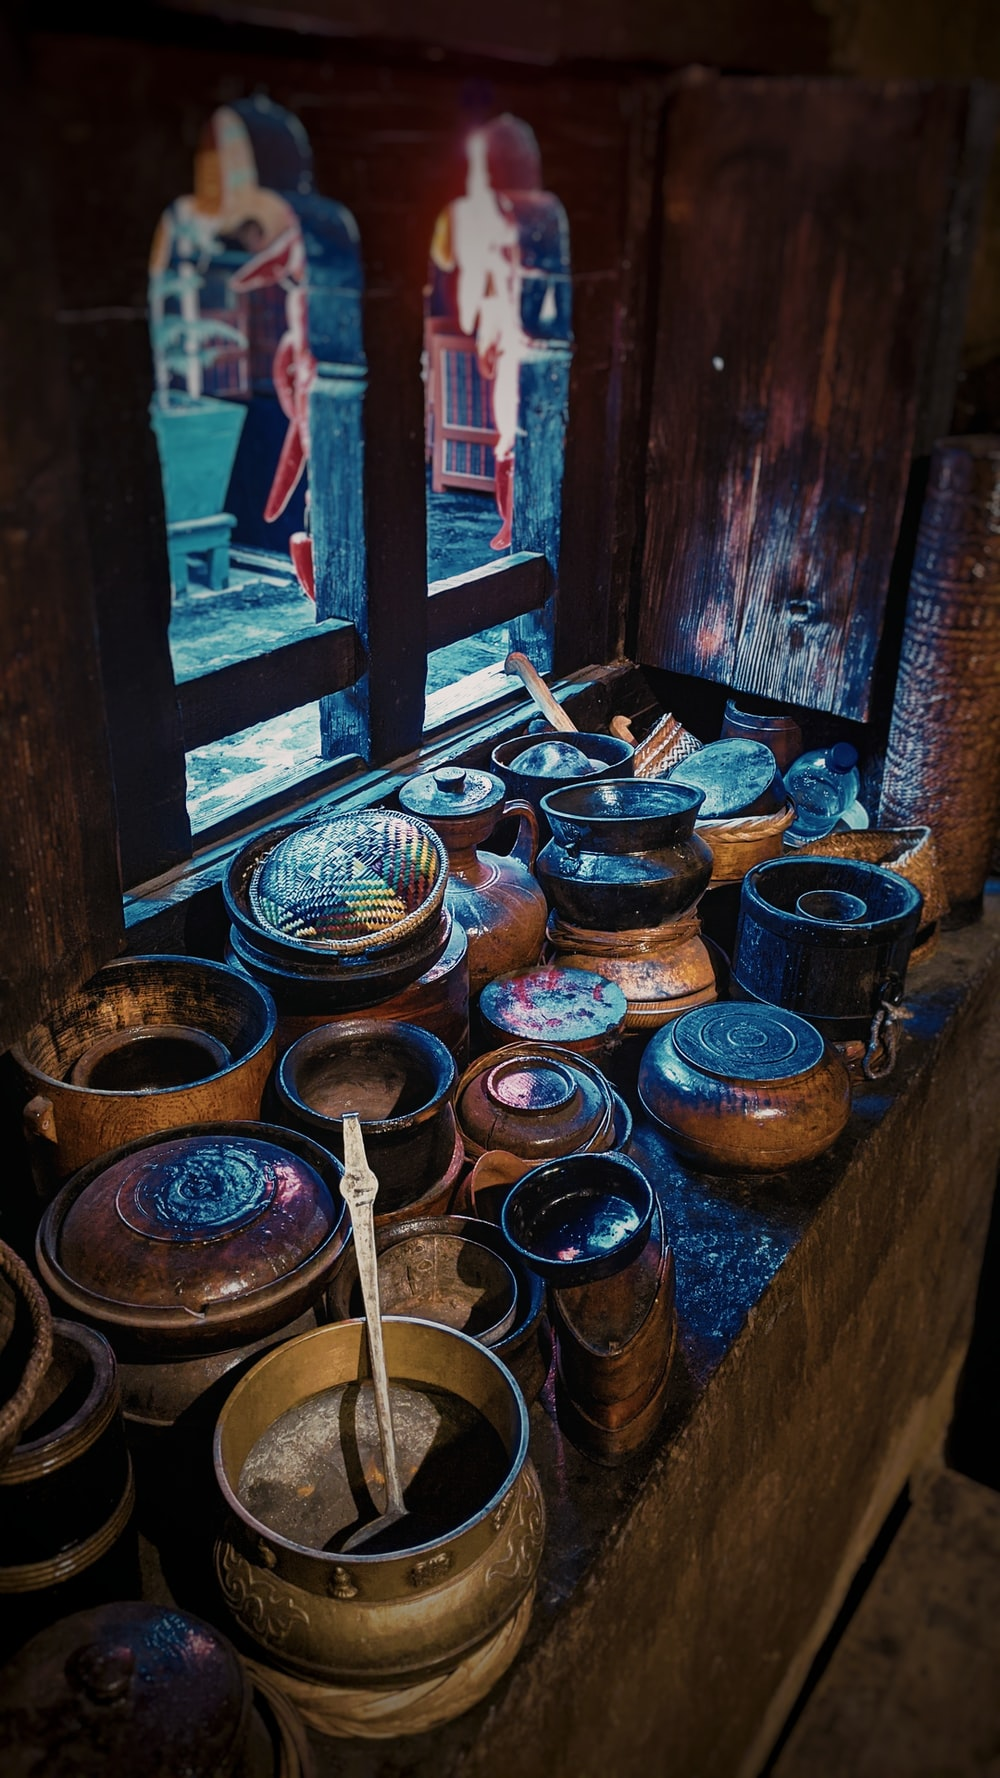 brown pots placed by the window